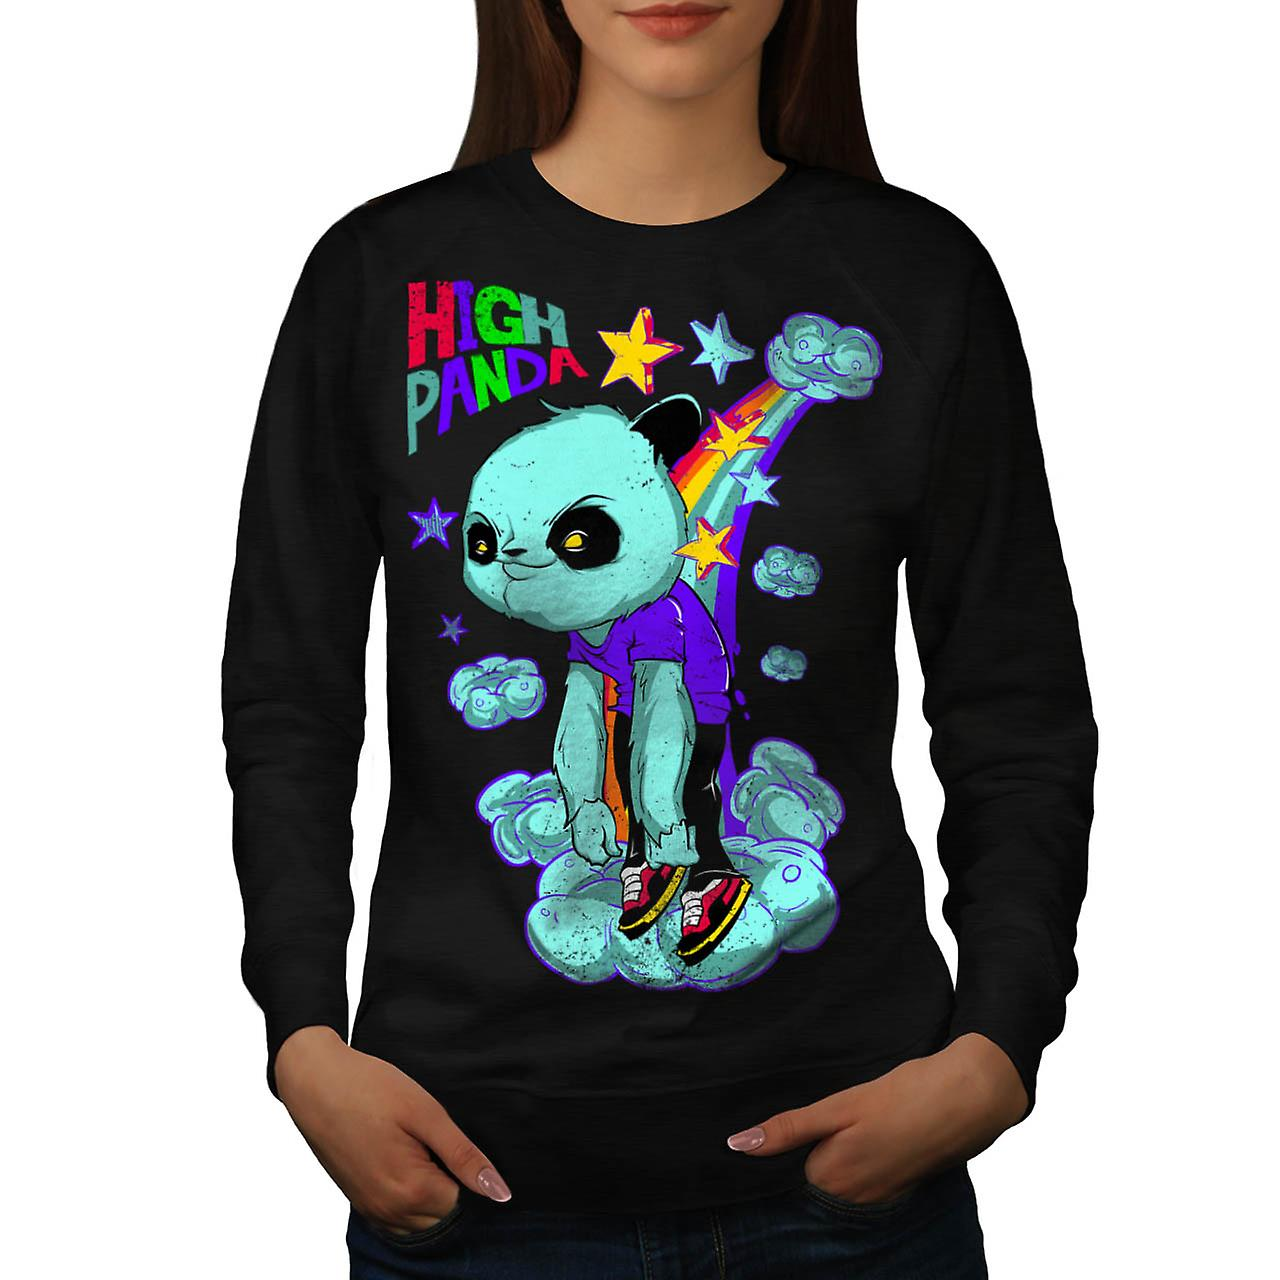 High Evil Panda China Rainbow Women Black Sweatshirt | Wellcoda